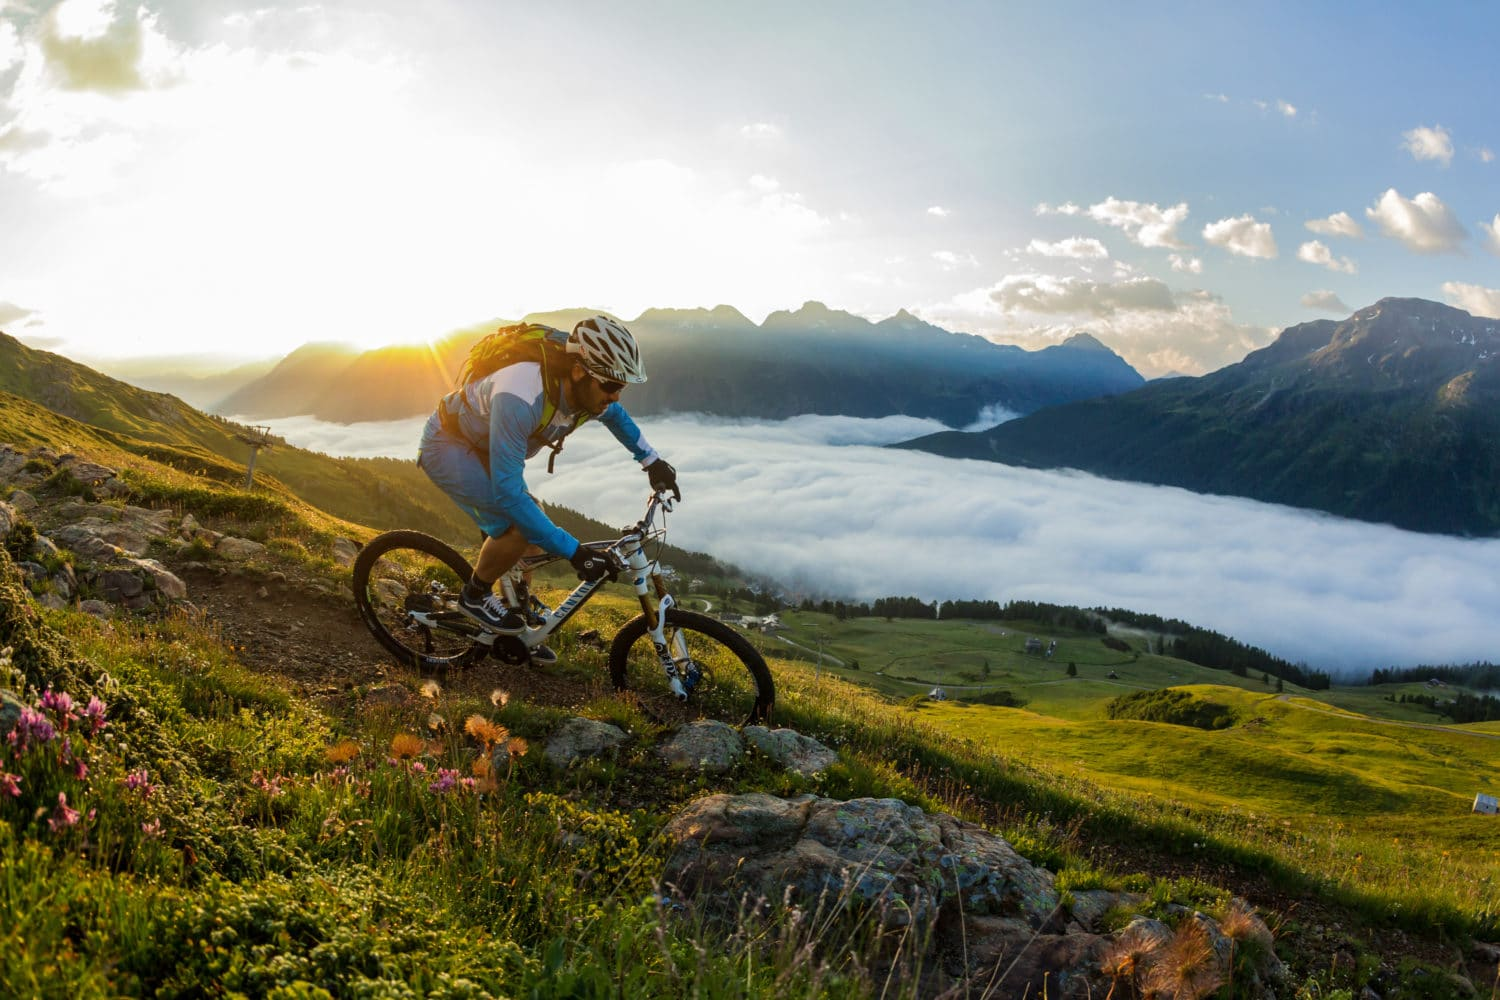 ENGADIN ST. MORITZ - Mountainbiker bei Sonnenaufgang auf dem Flow Trail auf der Corviglia. ENGADIN ST. MORITZ - Mountain biker on the Flow Trail on the Corviglia at sunrise. ENGADIN ST. MORITZ - Biker all'alba, sul Flow-trail del Corviglia. Copyright by: ENGADIN St. Moritz By-line: swiss-image.ch/Markus Greber